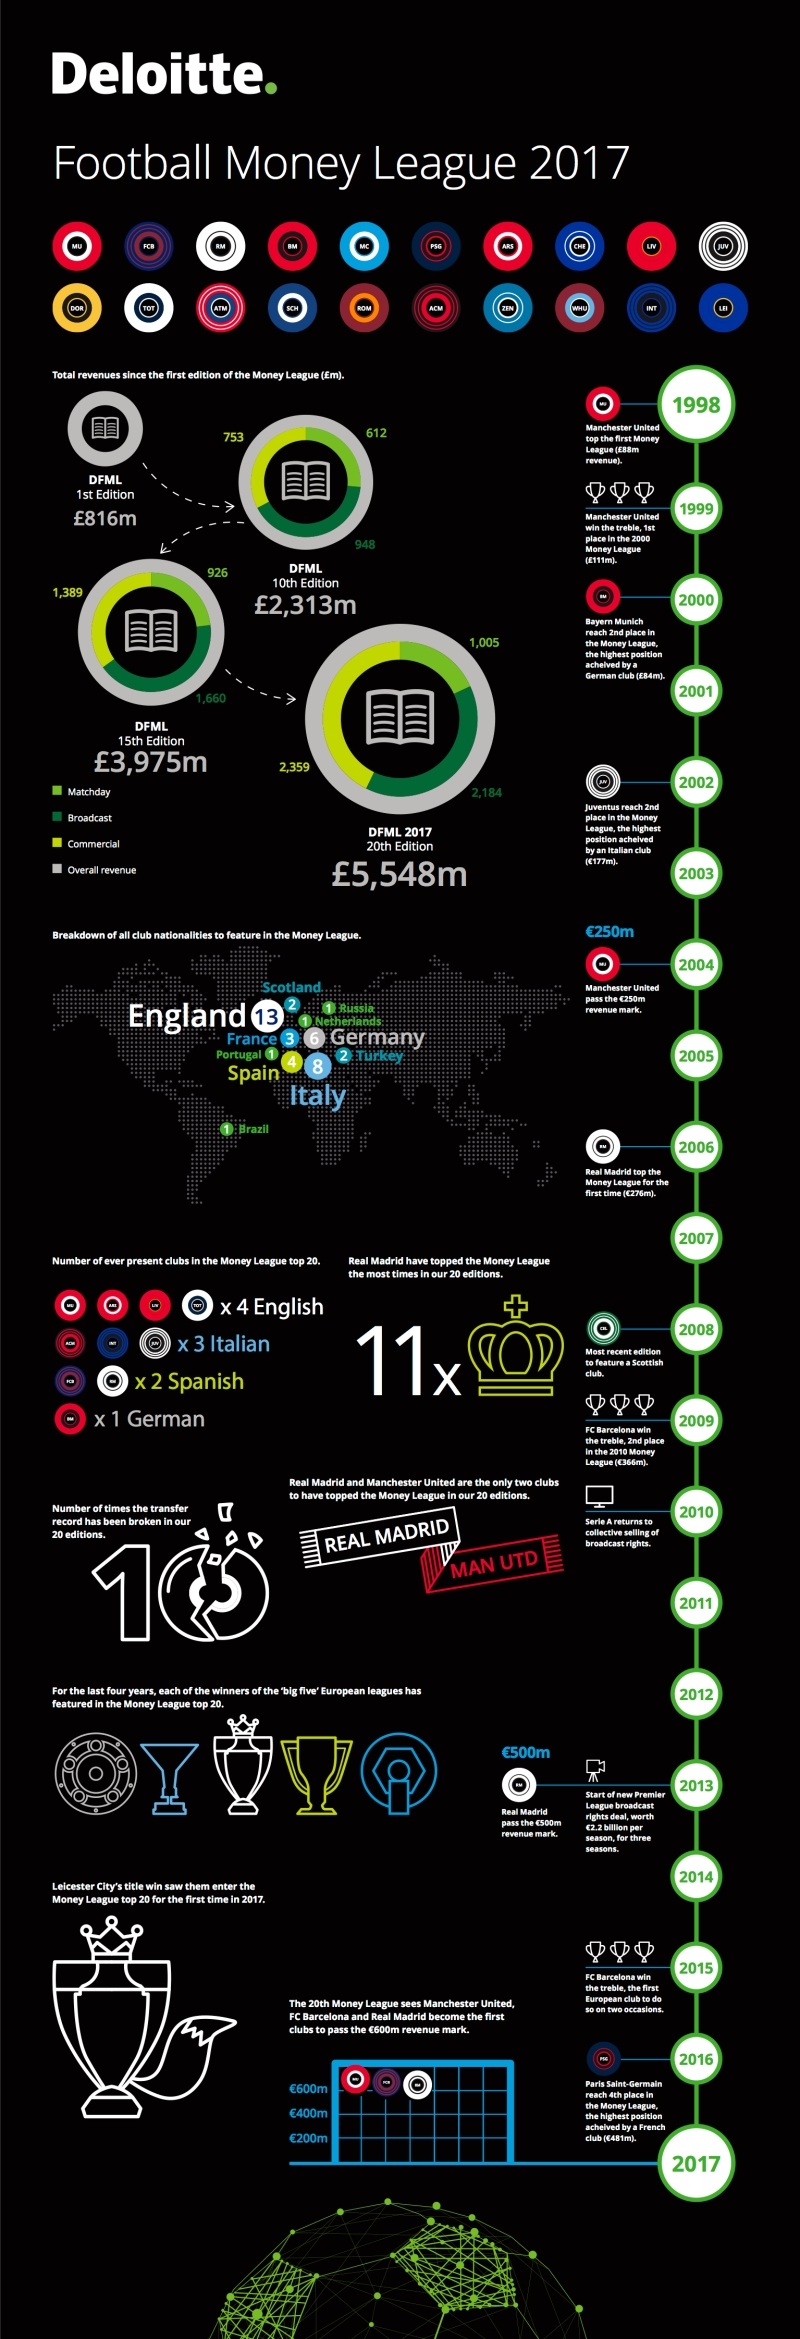 deloitte-uk-sport-football-money-league-2017-infographic.jpg